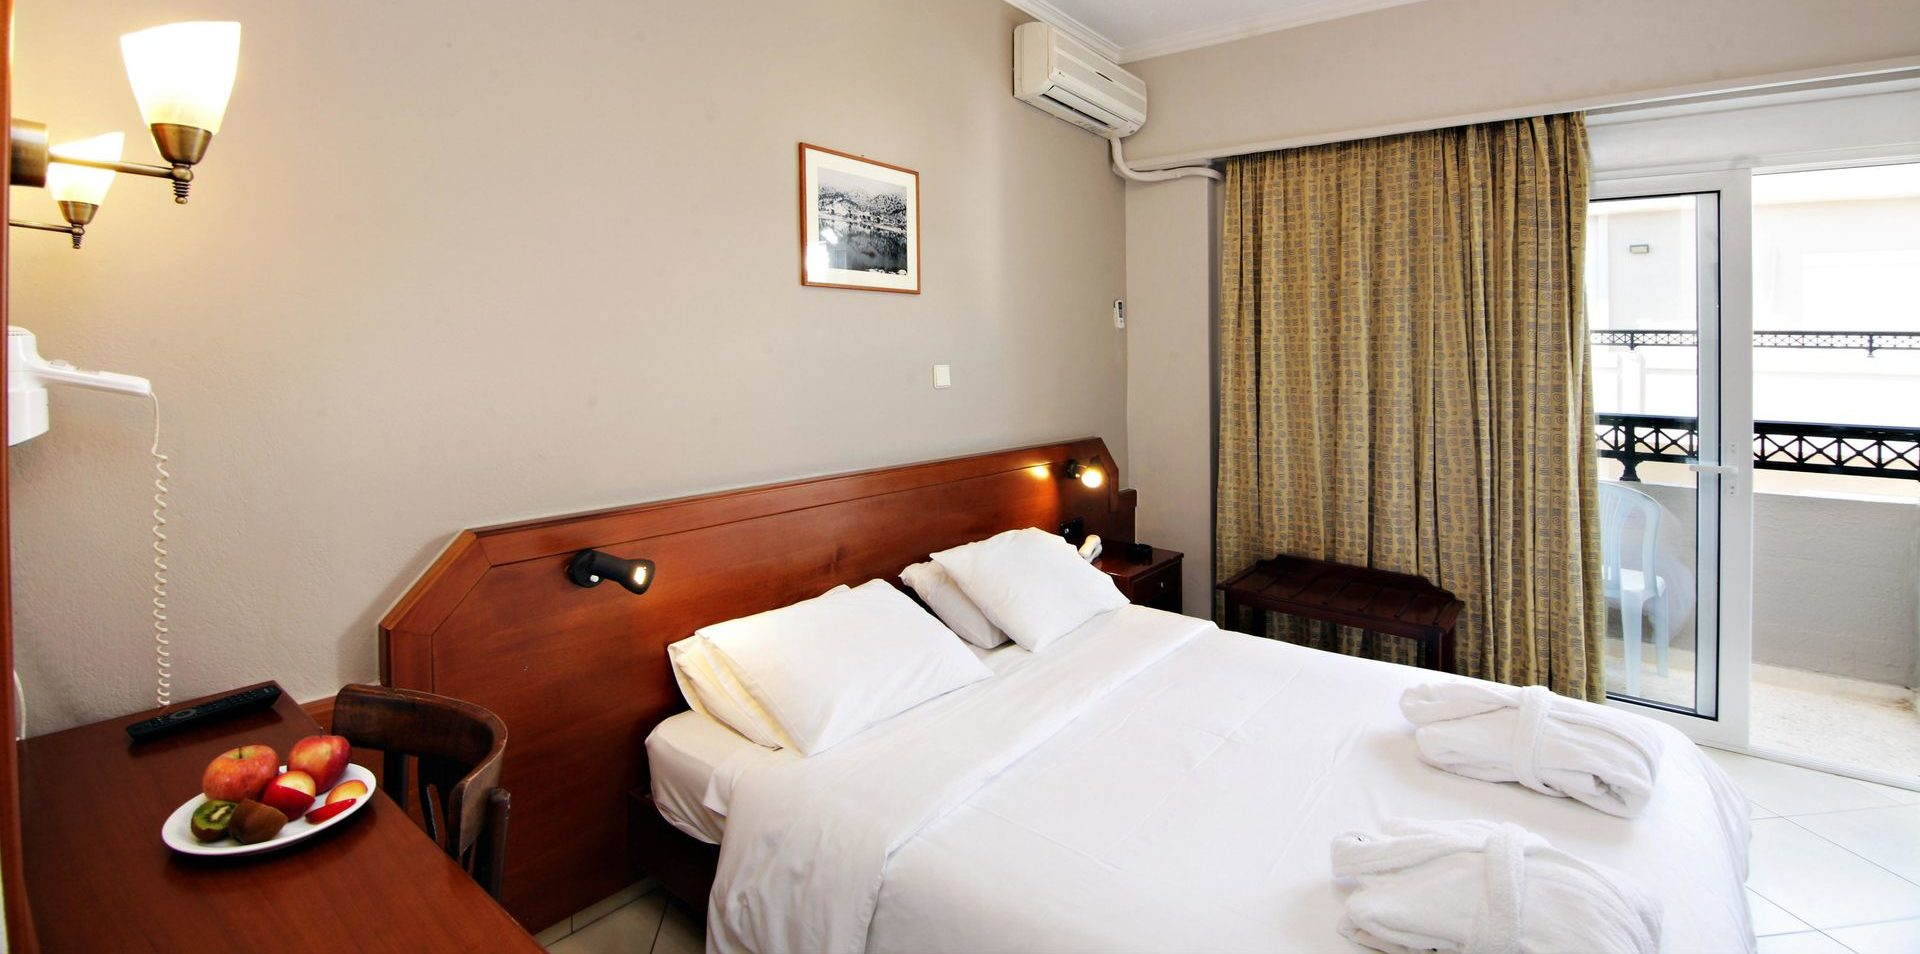 Economy Double Room 1 Arkadi Hotel Chania city center Crete